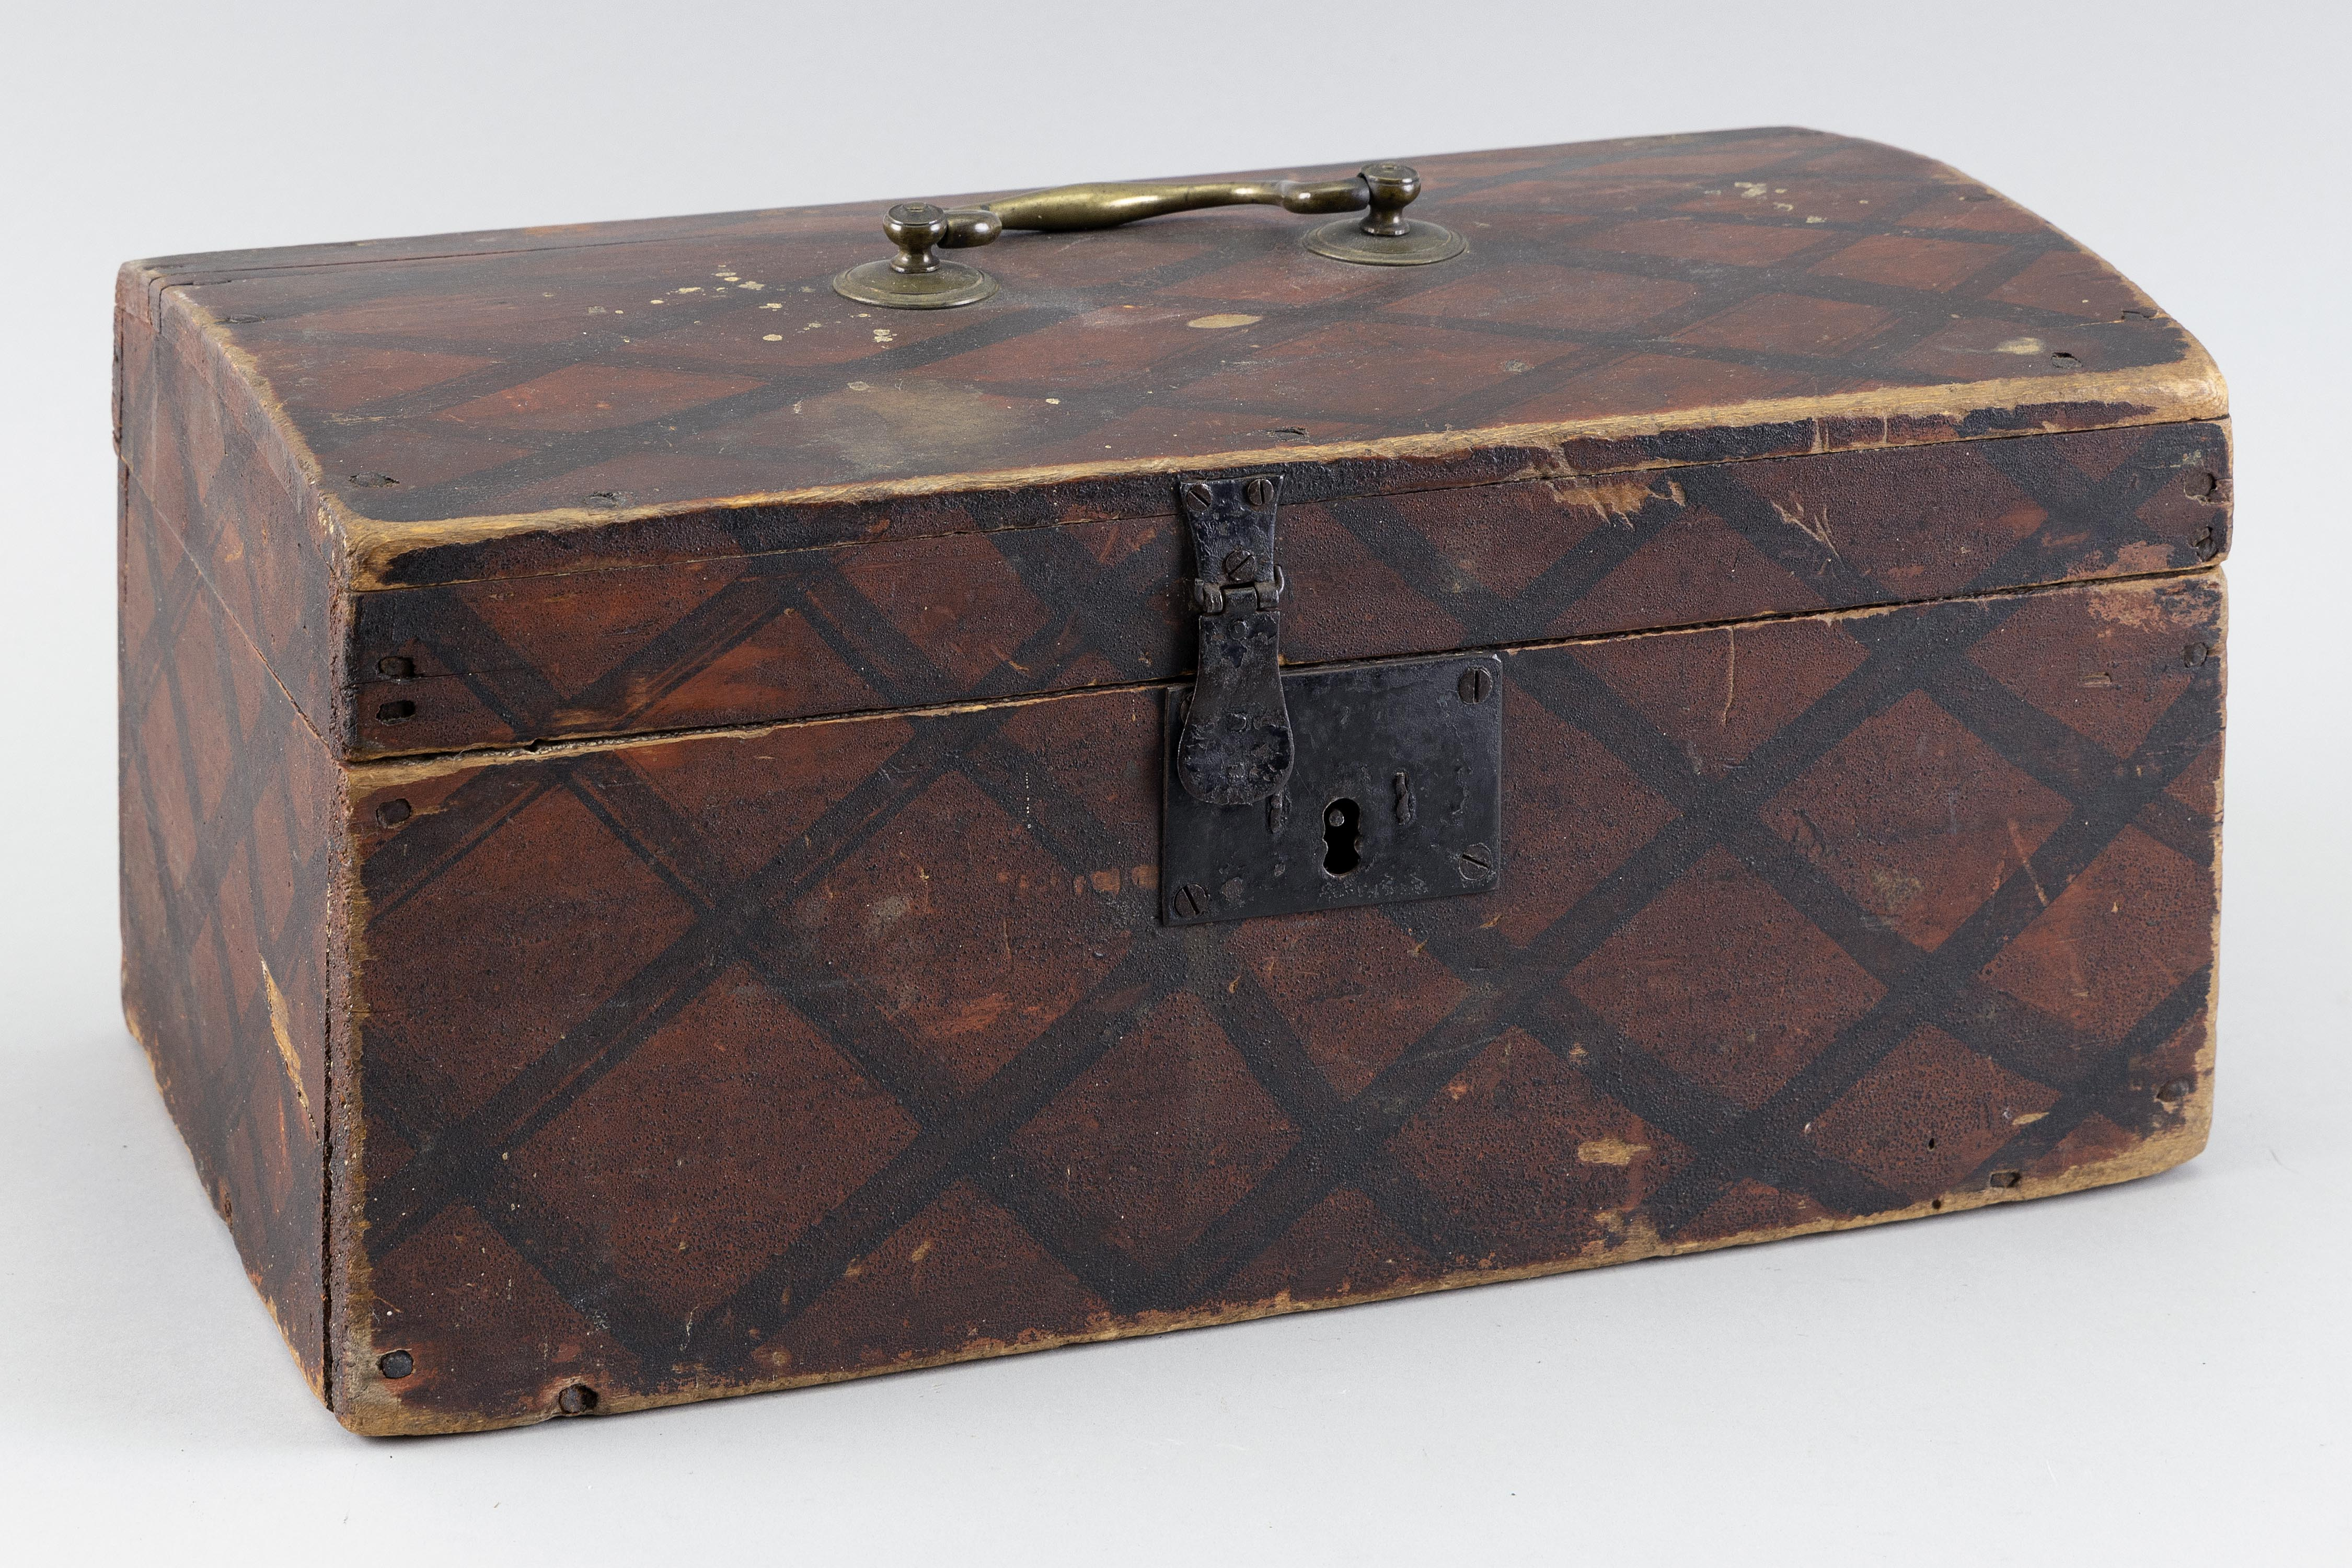 PAINTED WOODEN DOCUMENT BOX America, First Half of the 19th Century Height 7.5